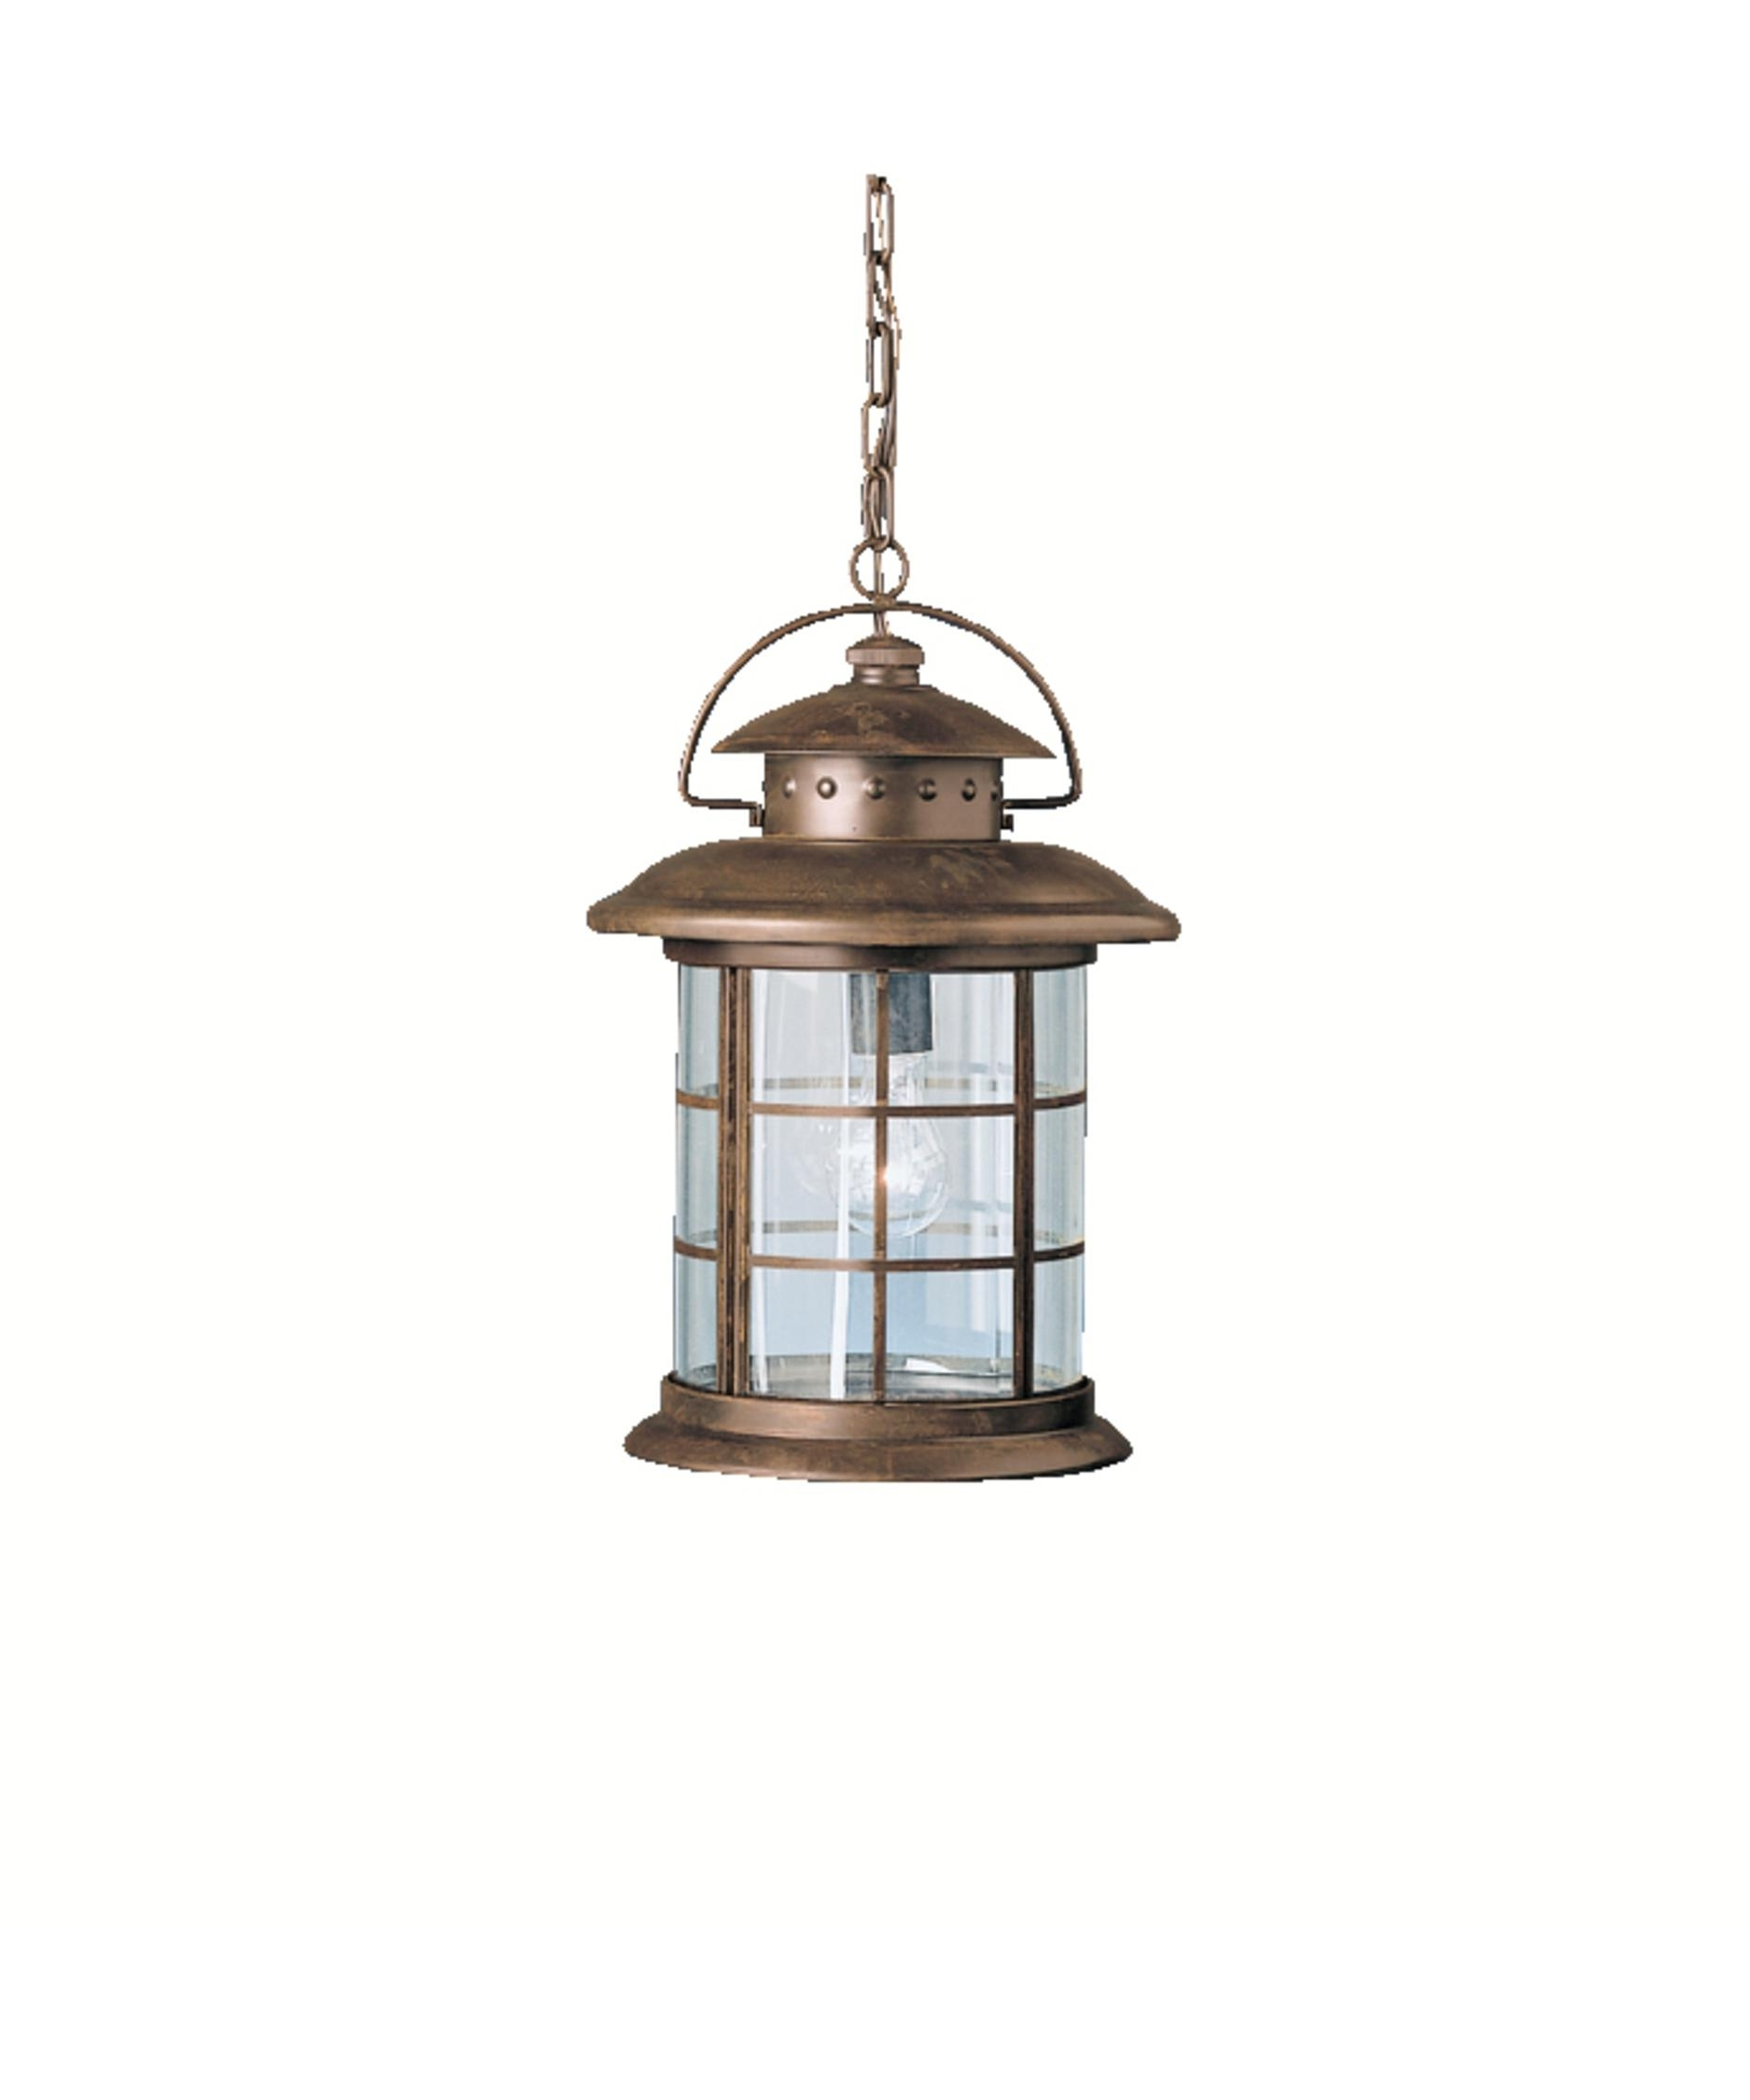 Newest Kichler 9870 Rustic 11 Inch Wide 1 Light Outdoor Hanging Lantern Pertaining To Kichler Outdoor Ceiling Lights (View 7 of 20)